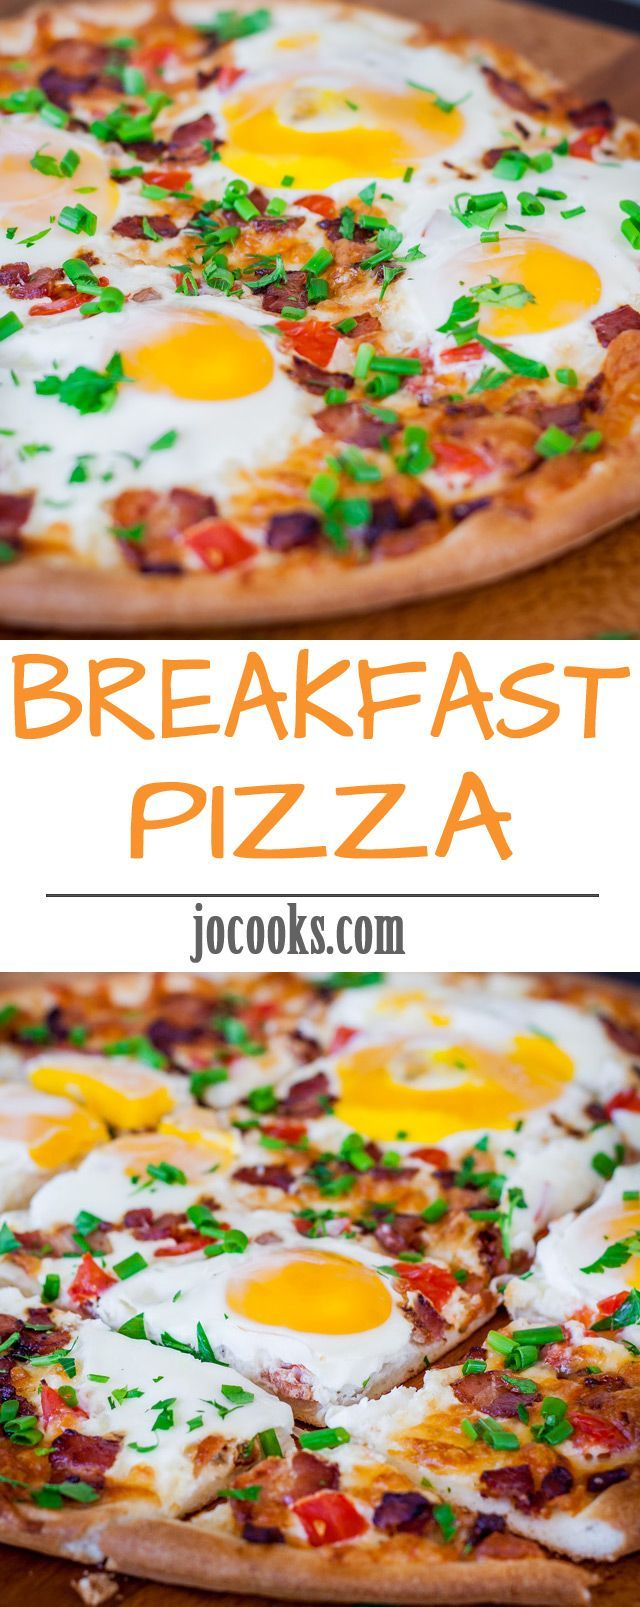 Pizza – eggs and bacon on a pizza, what could be better.